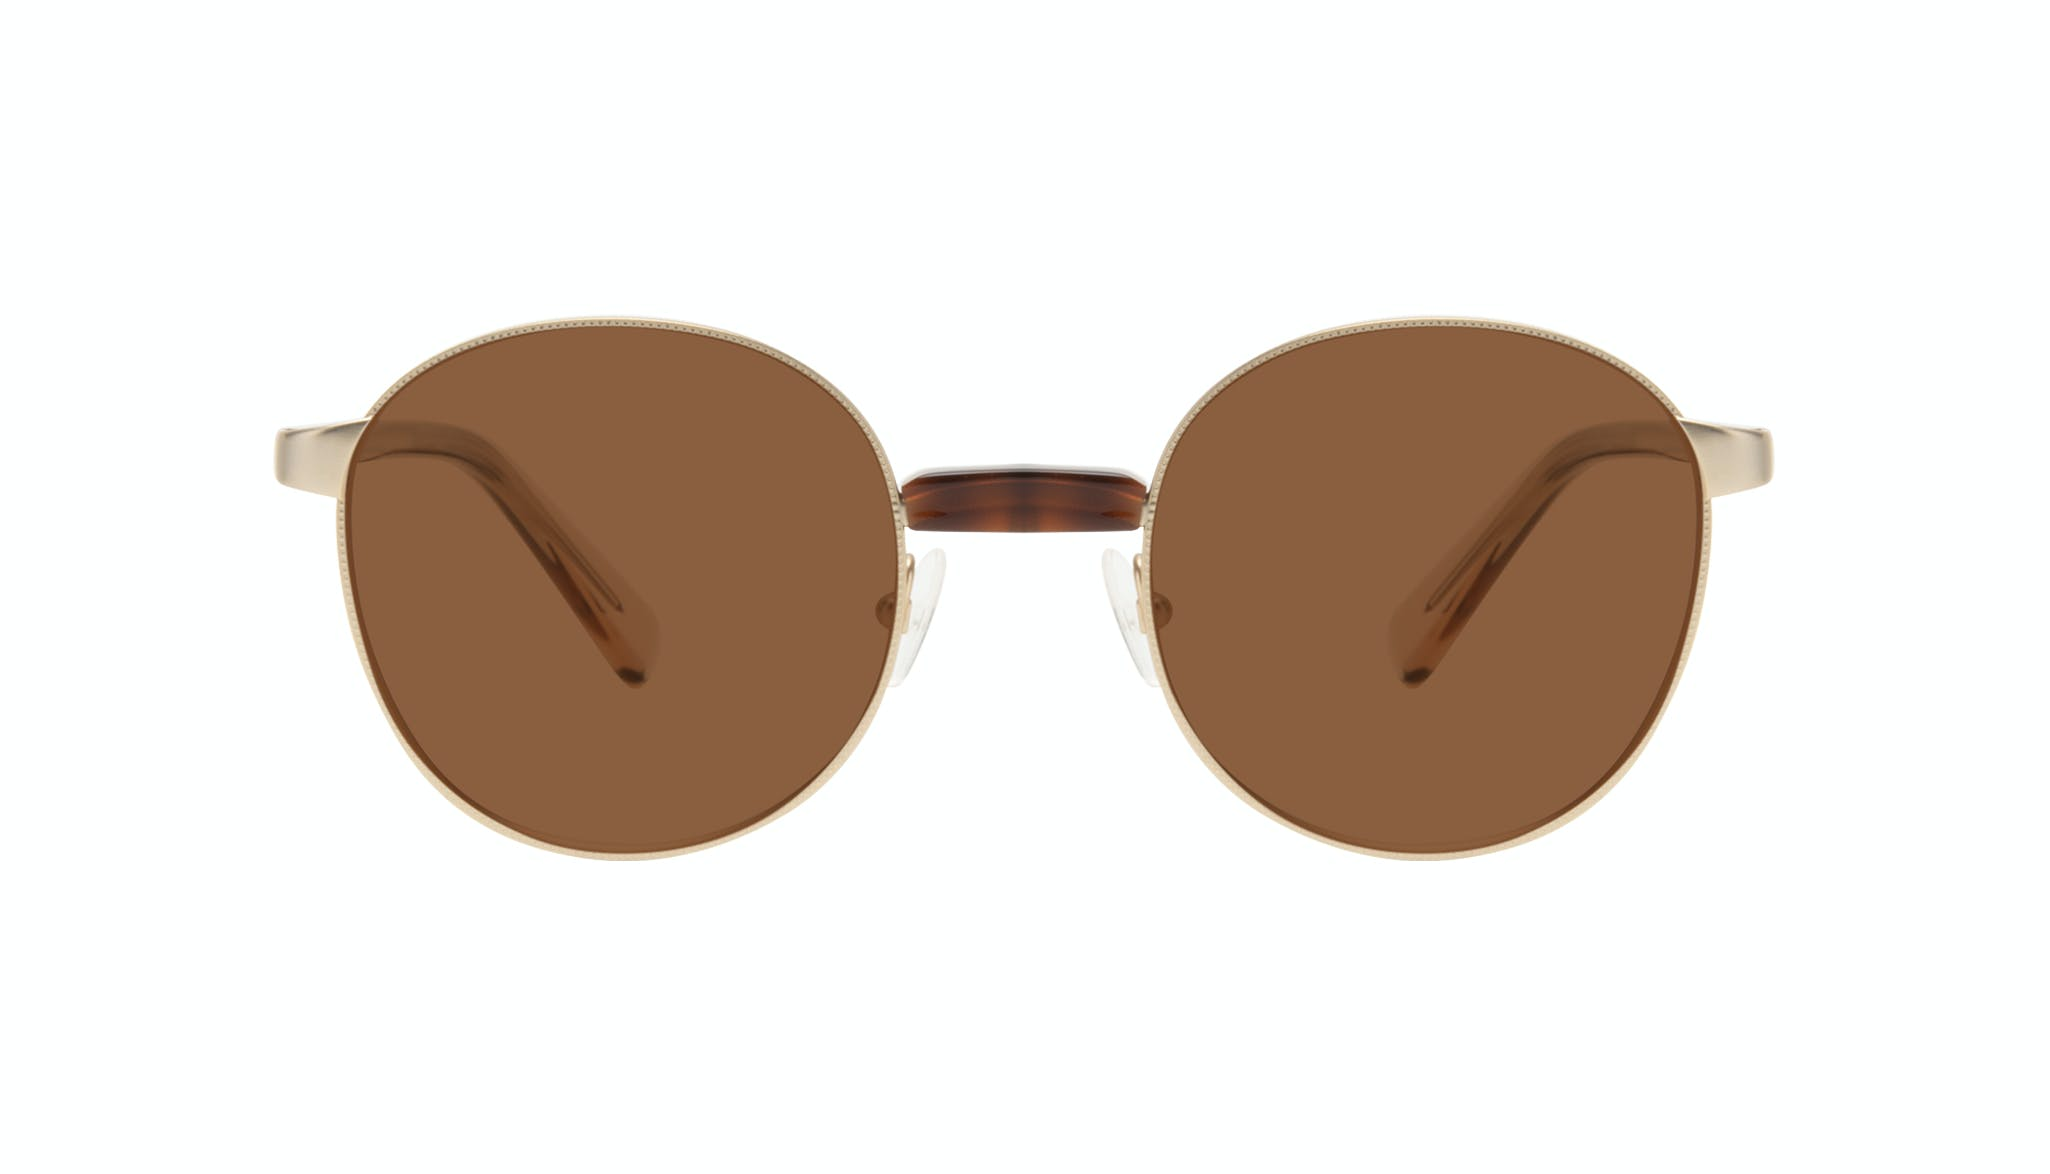 Affordable Fashion Glasses Round Sunglasses Women Curious Gold Front